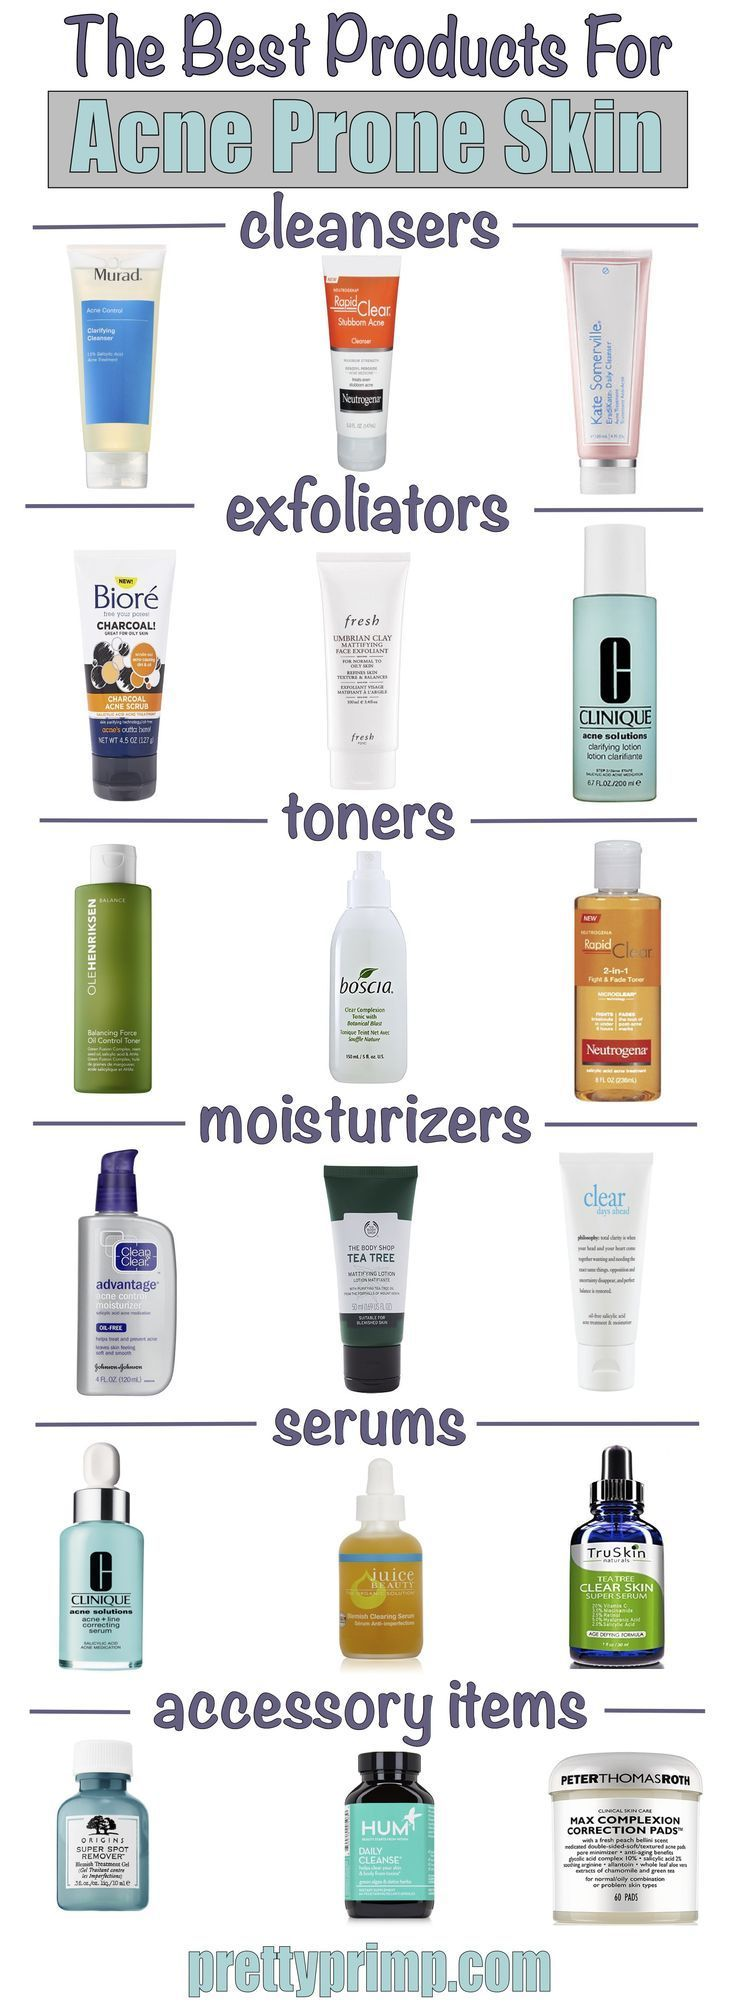 The Best Skincare Products And Routine For Acne Prone Skin Get Rid Of Your Acne With These Pr Best Acne Products Skin Cleanser Products Best Skincare Products